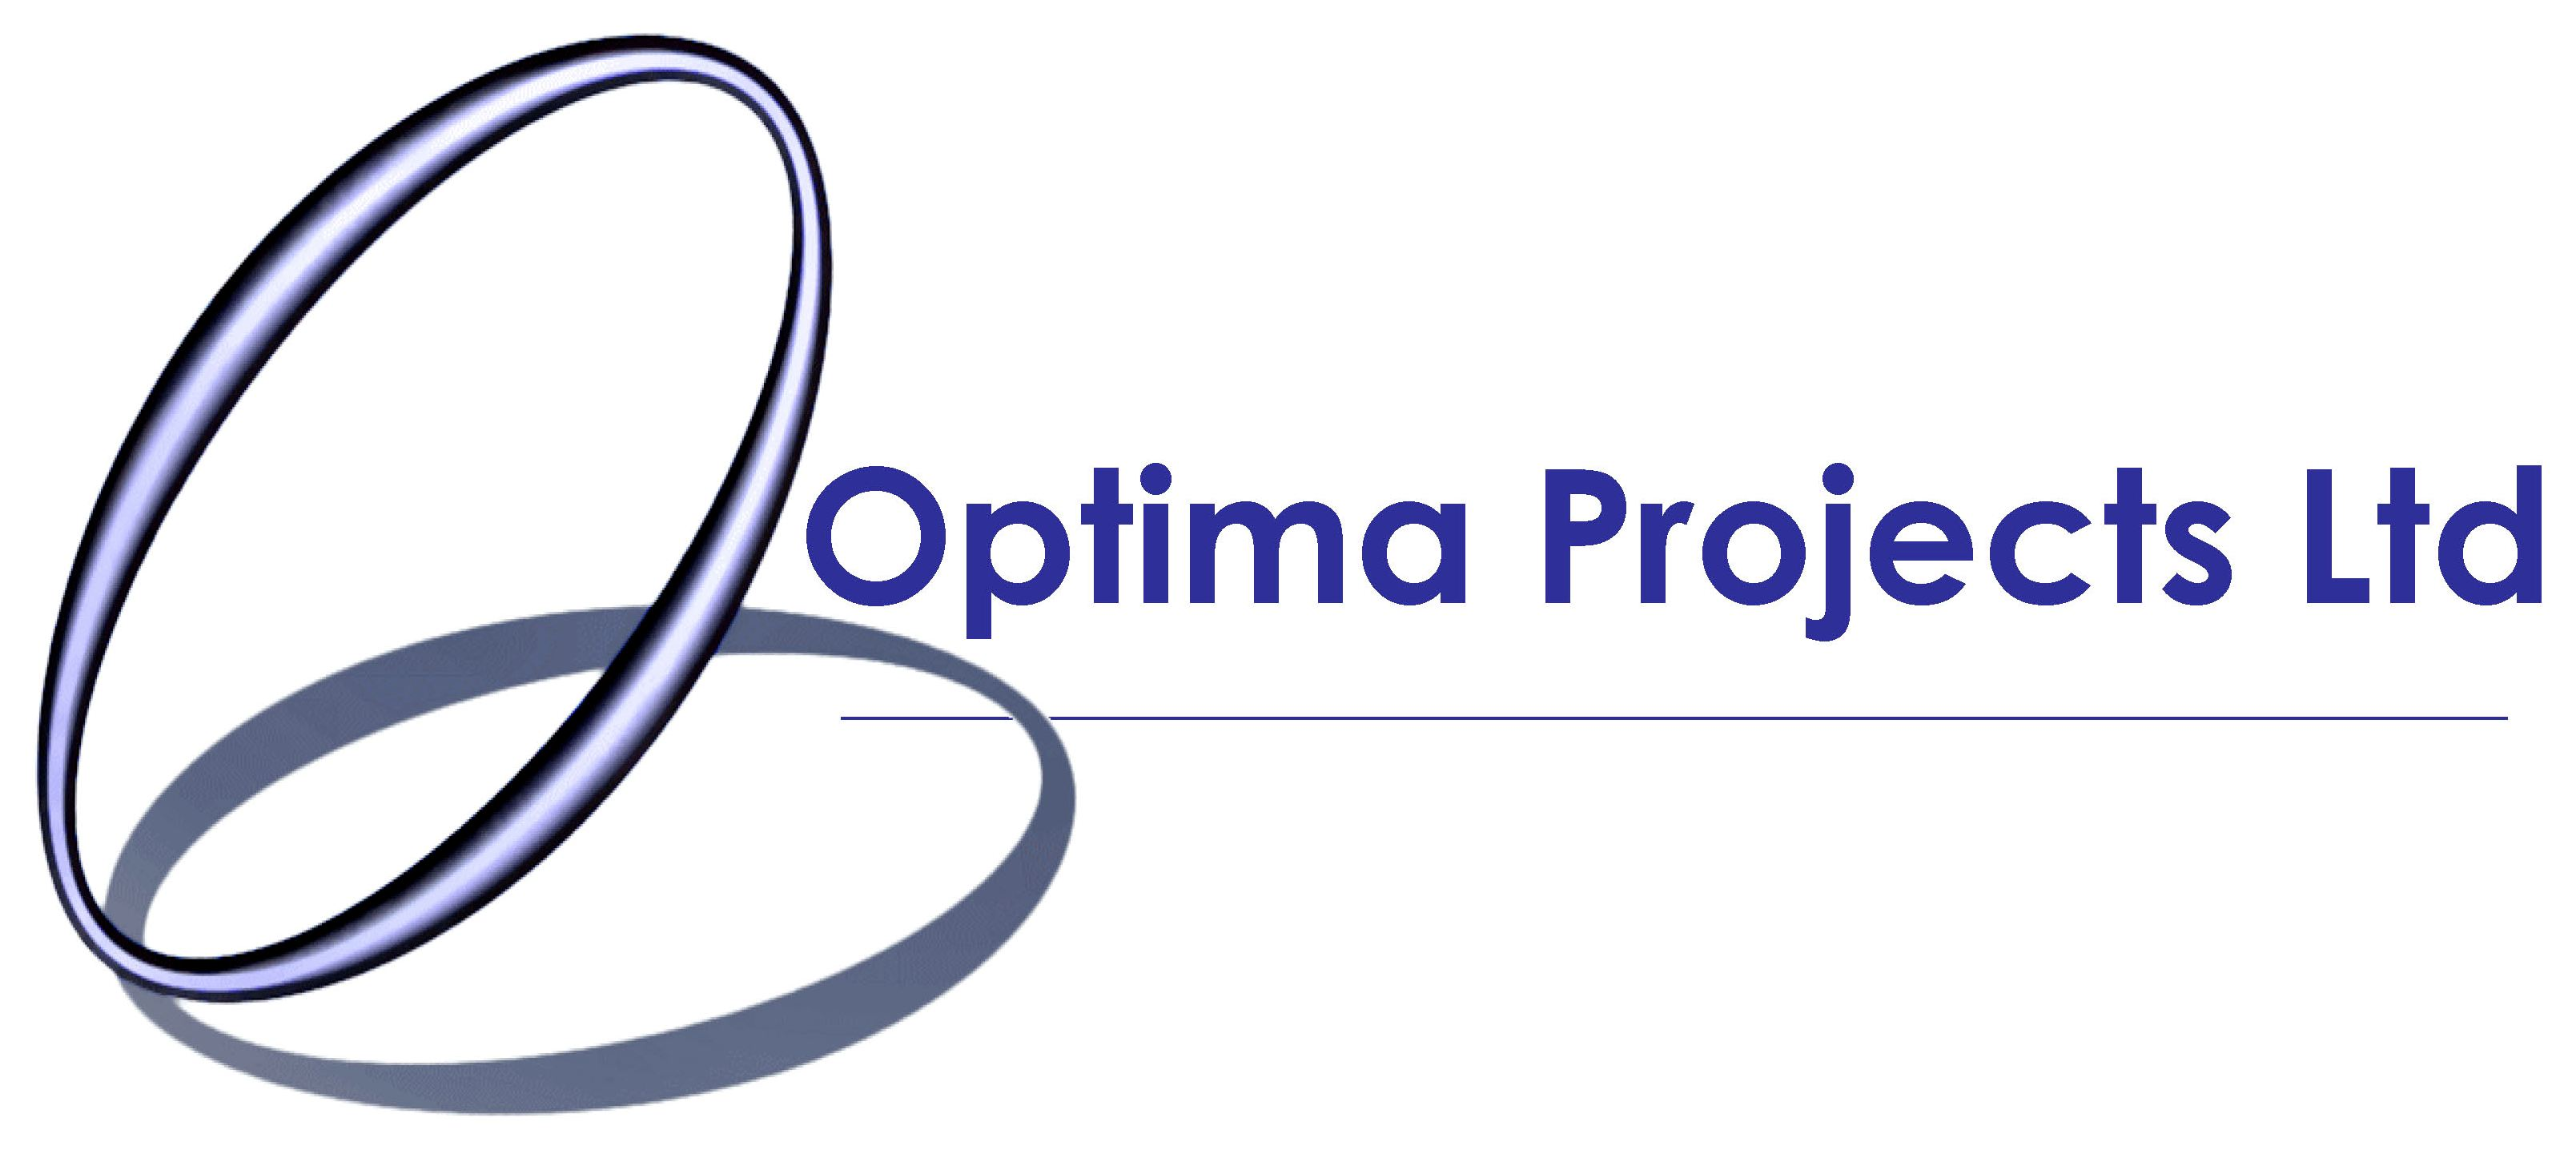 Optima Projects Ltd logo